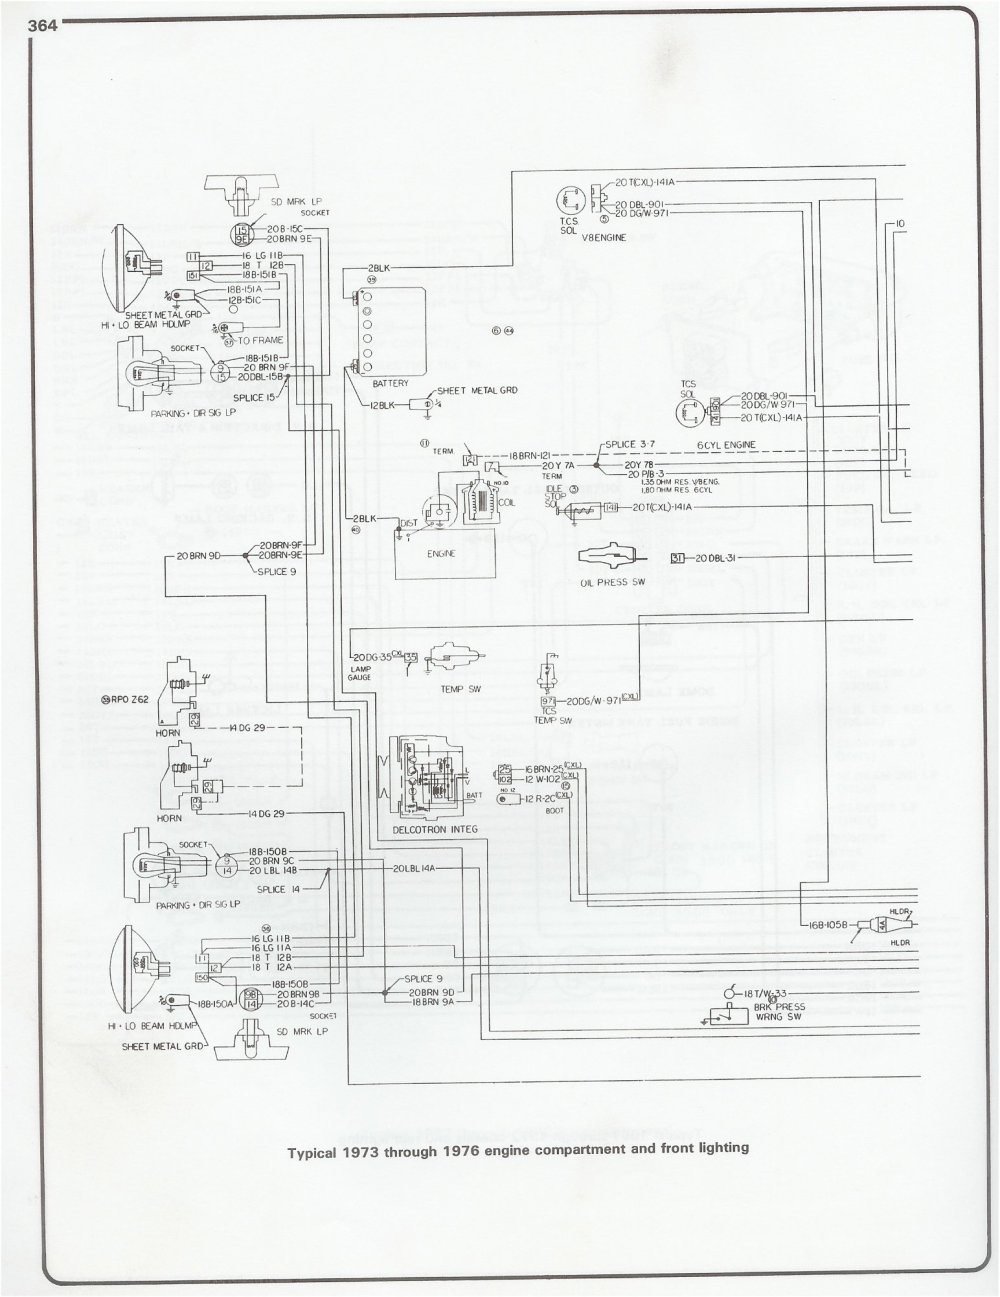 medium resolution of 1957 gmc van fuse box diagram